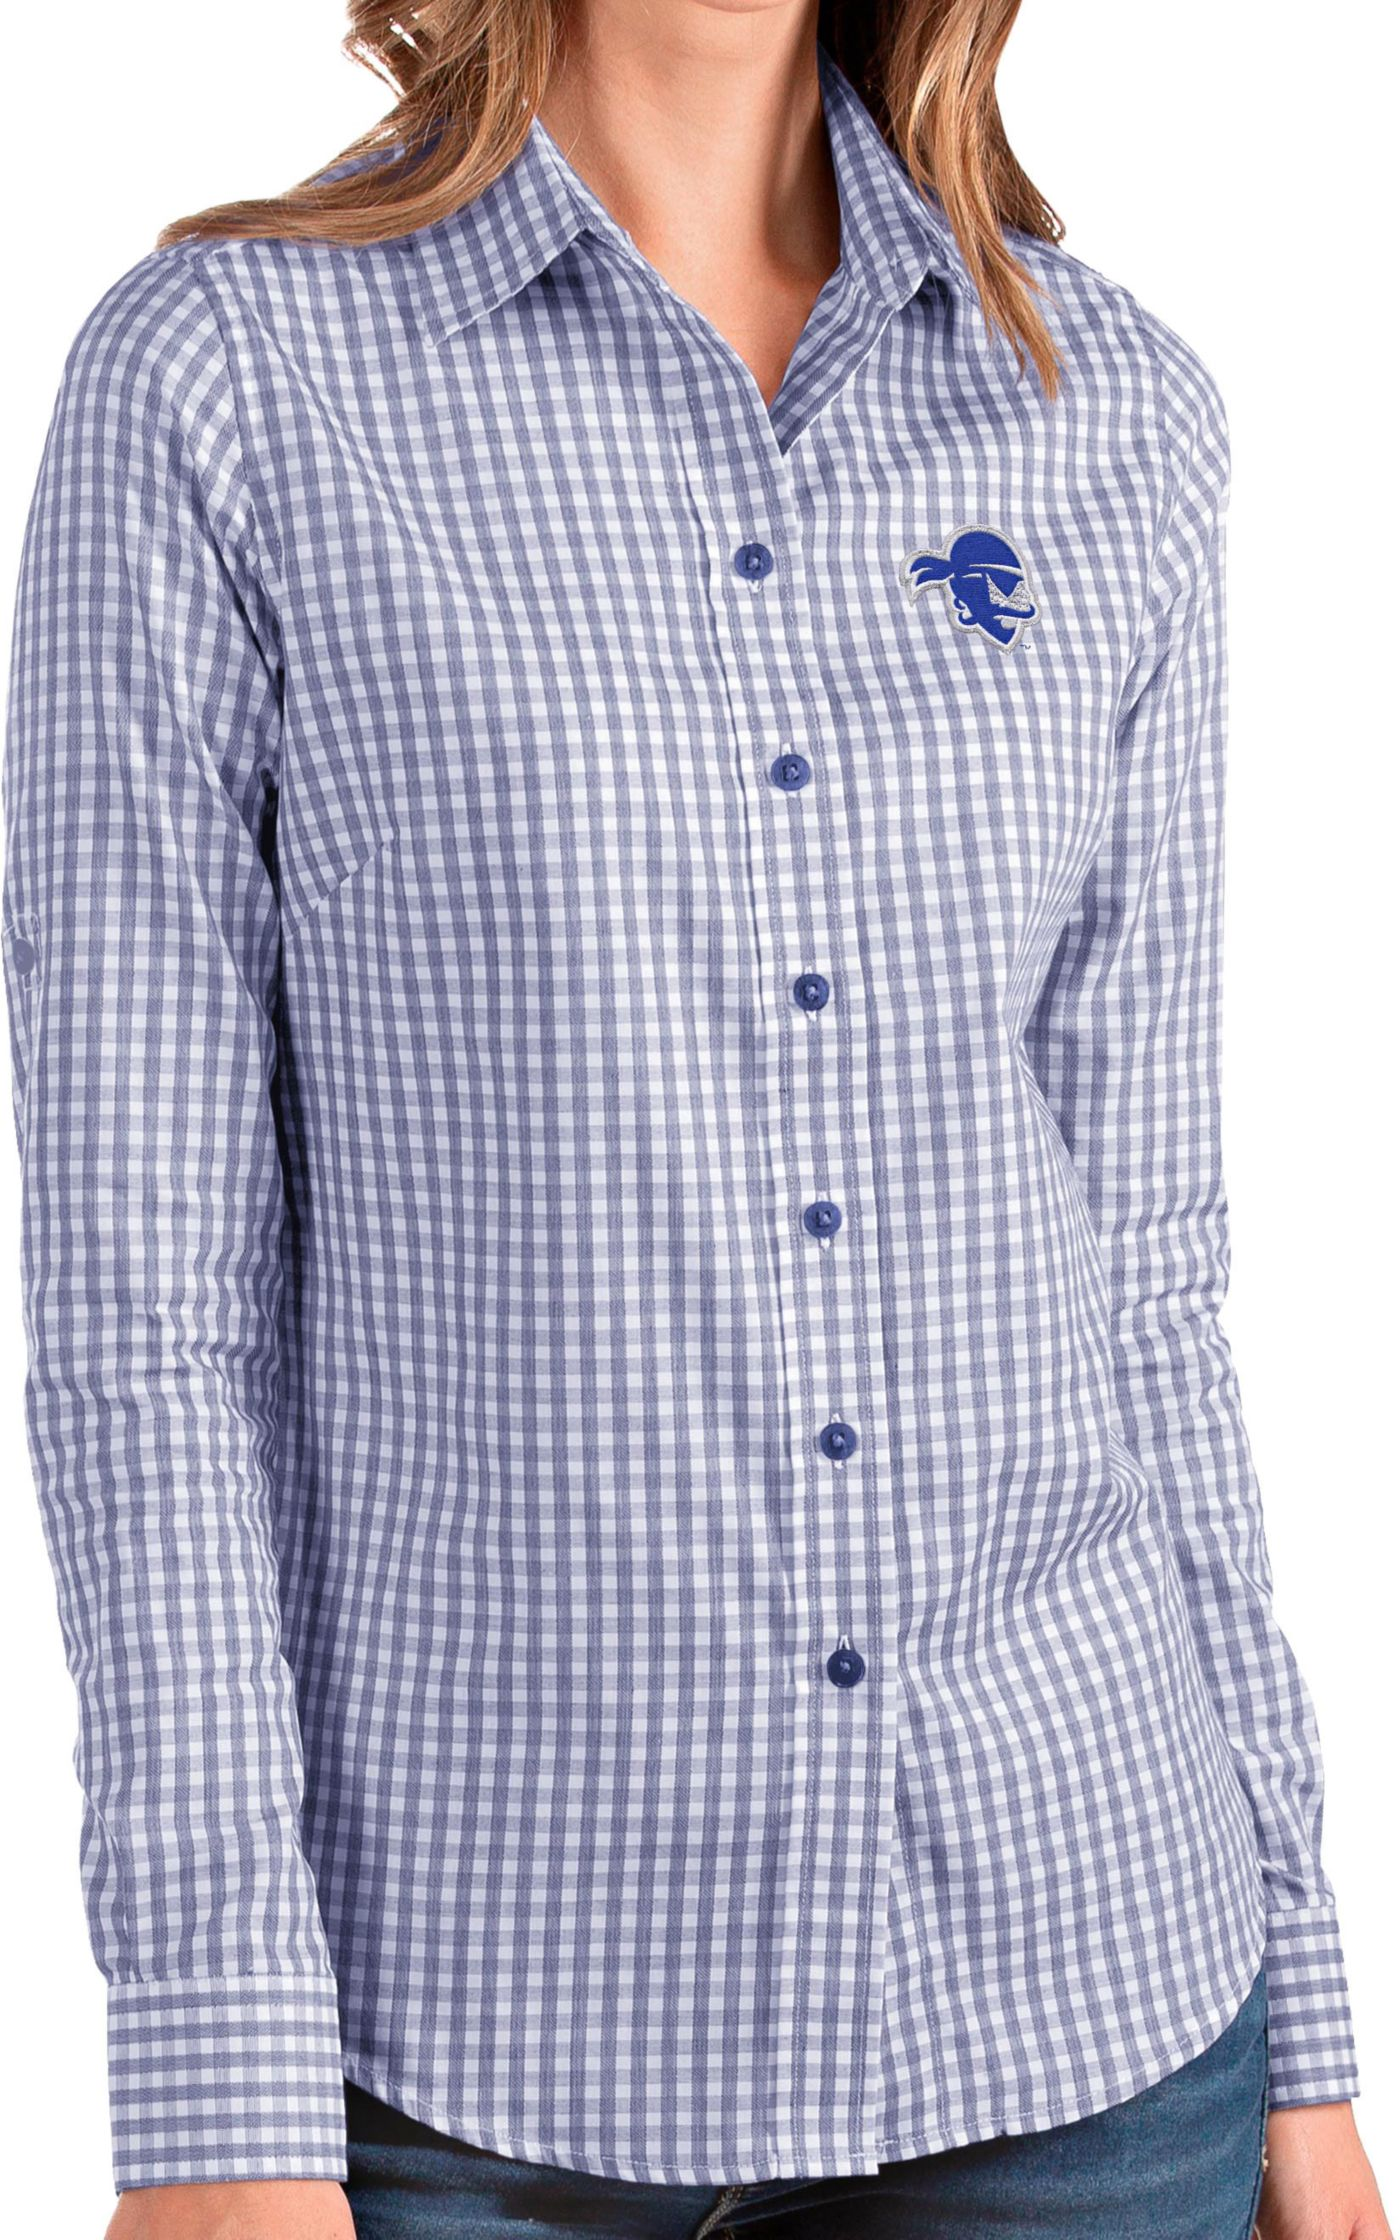 Antigua Women's Seton Hall Seton Hall Pirates Blue Structure Button Down Long Sleeve Shirt